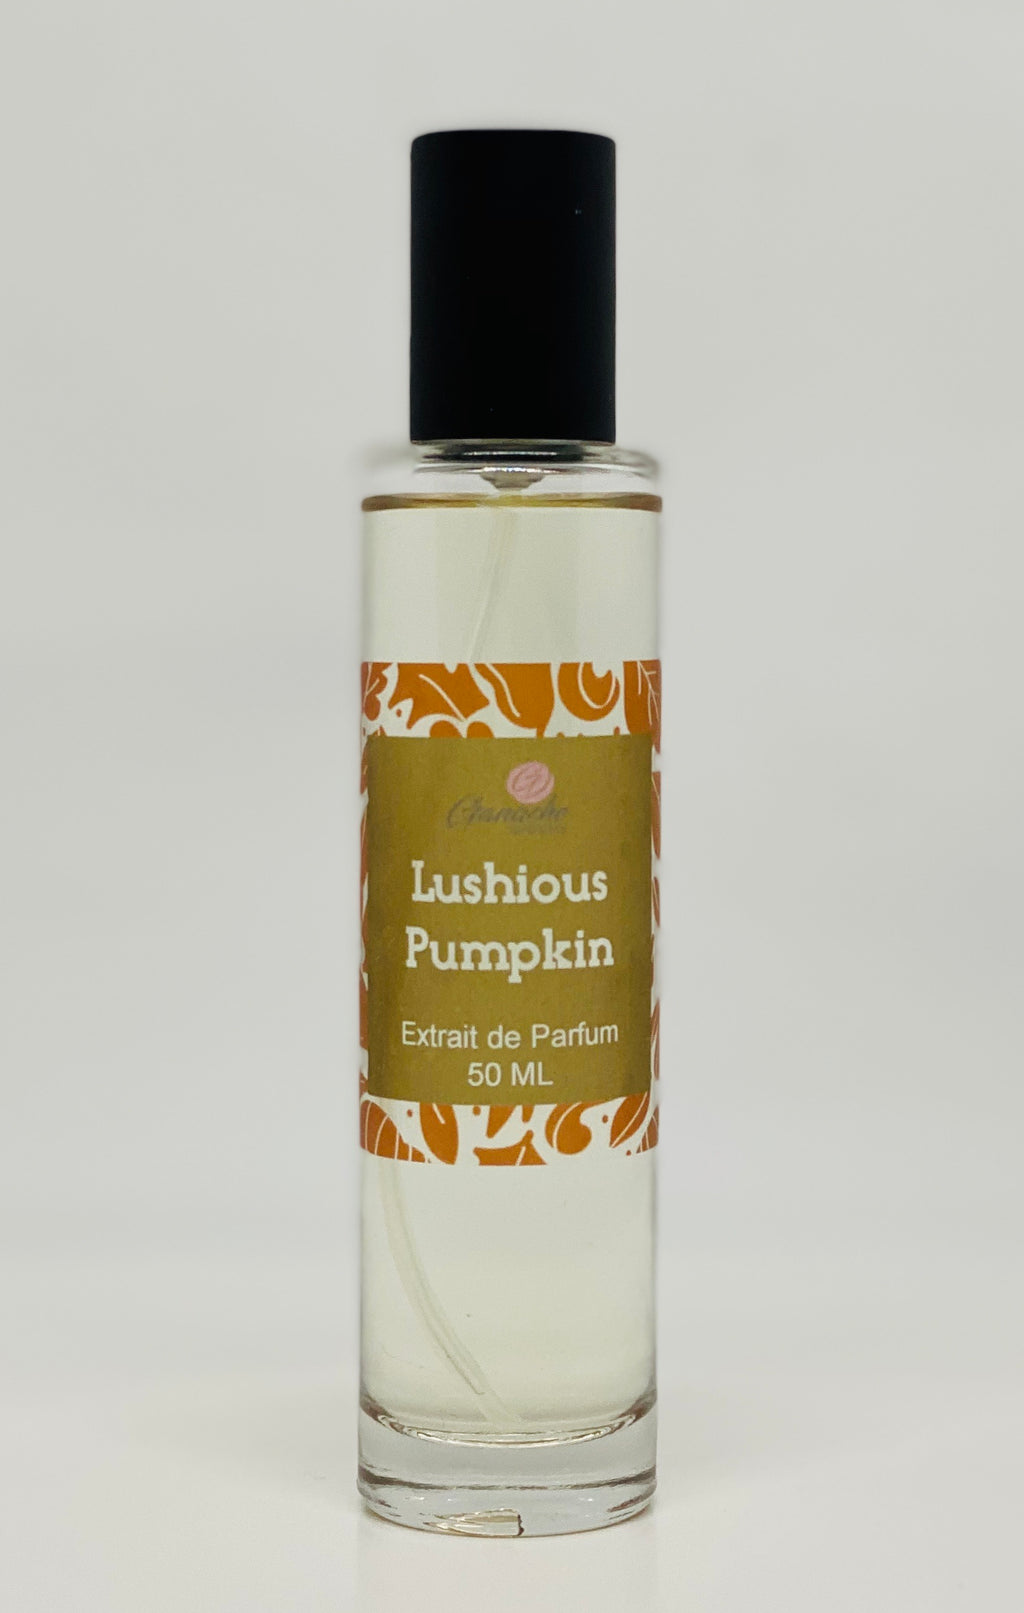 Lushious Pumpkin